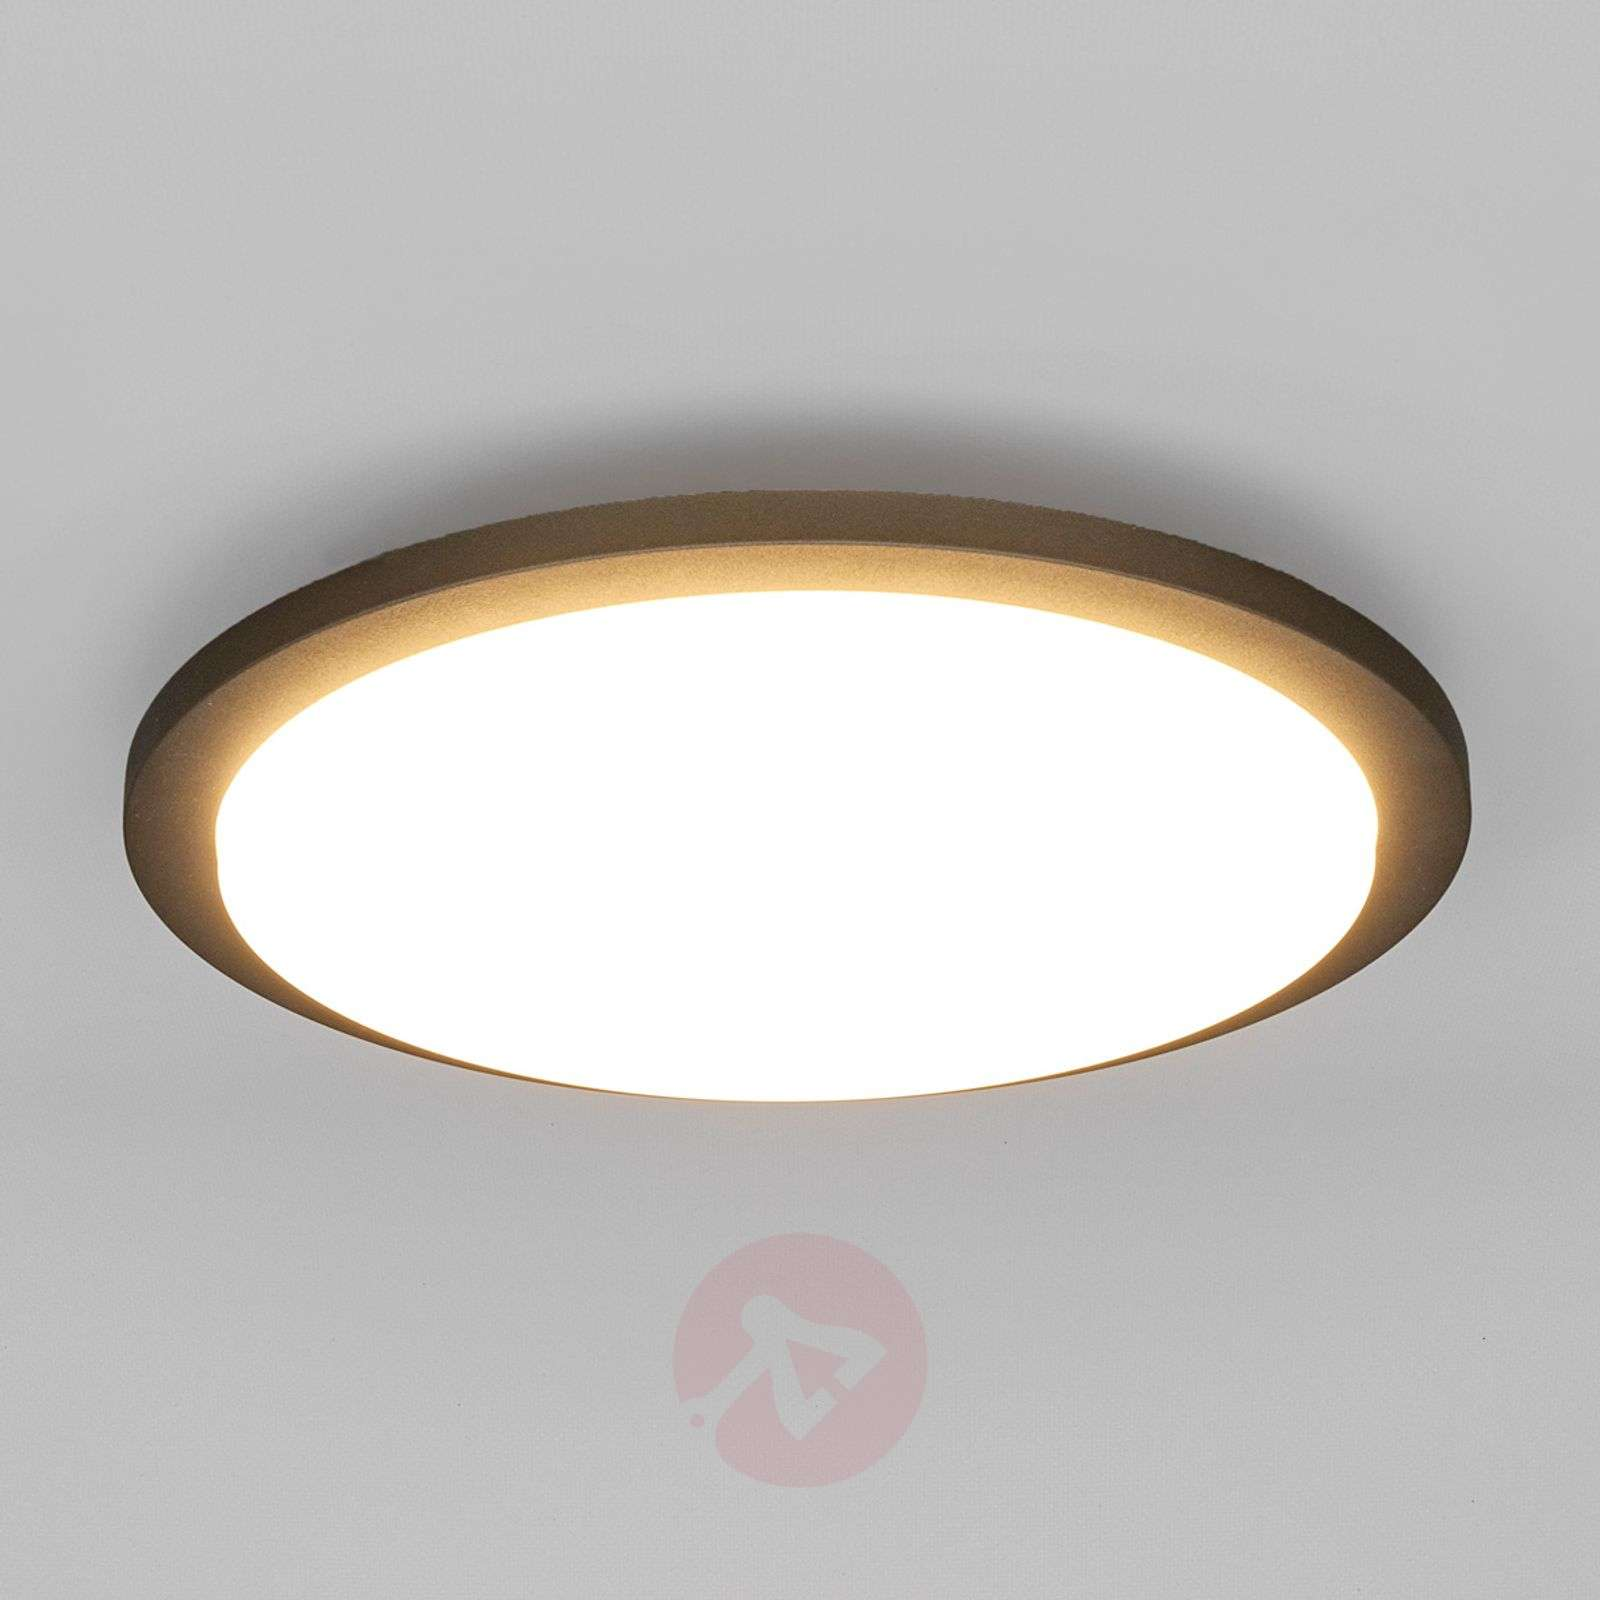 Outdoor led ceiling light benton lights mozeypictures Image collections